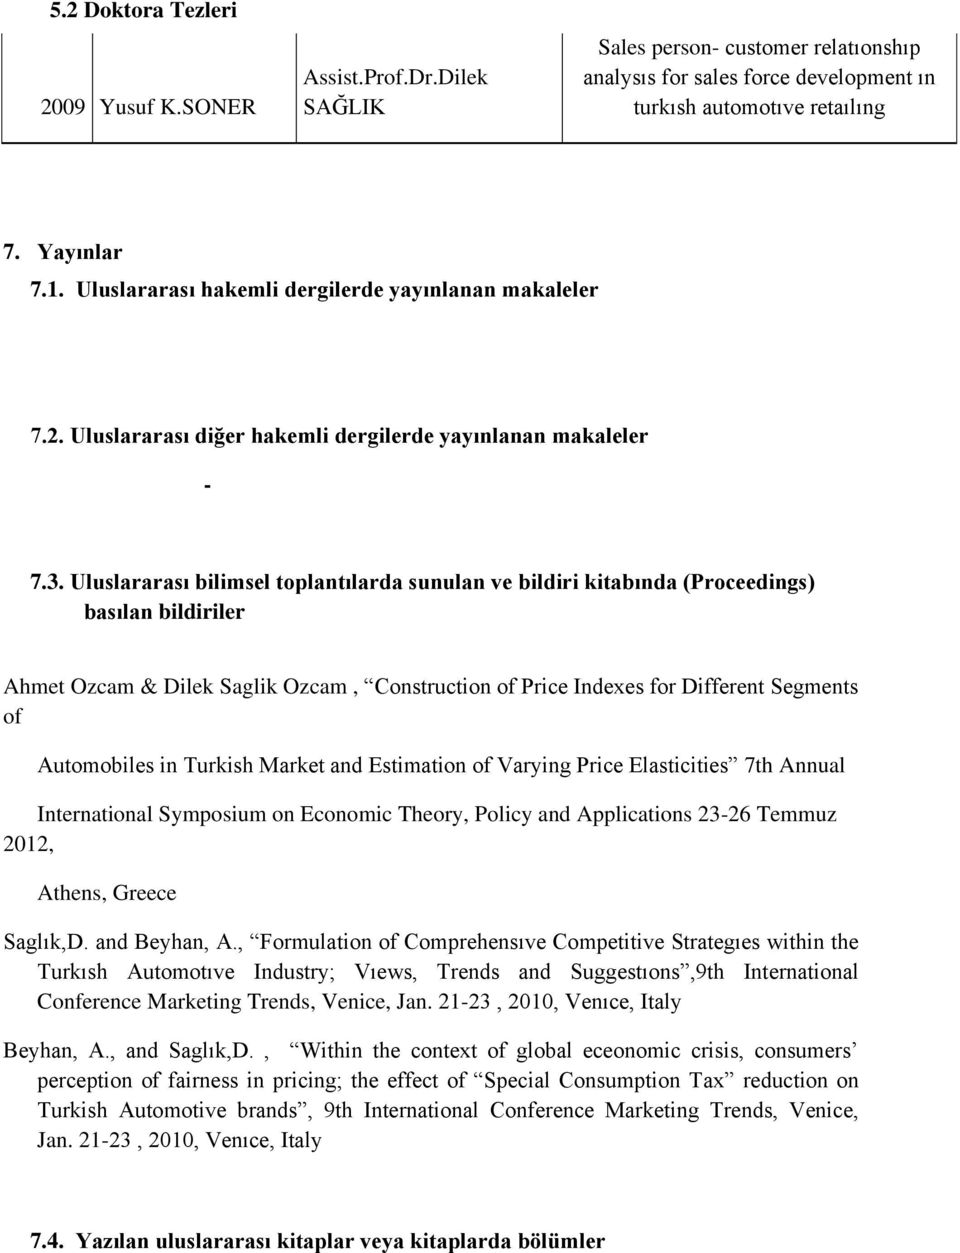 Uluslararası bilimsel toplantılarda sunulan ve bildiri kitabında (Proceedings) basılan bildiriler Ahmet Ozcam & Dilek Saglik Ozcam, Construction of Price Indexes for Different Segments of Automobiles